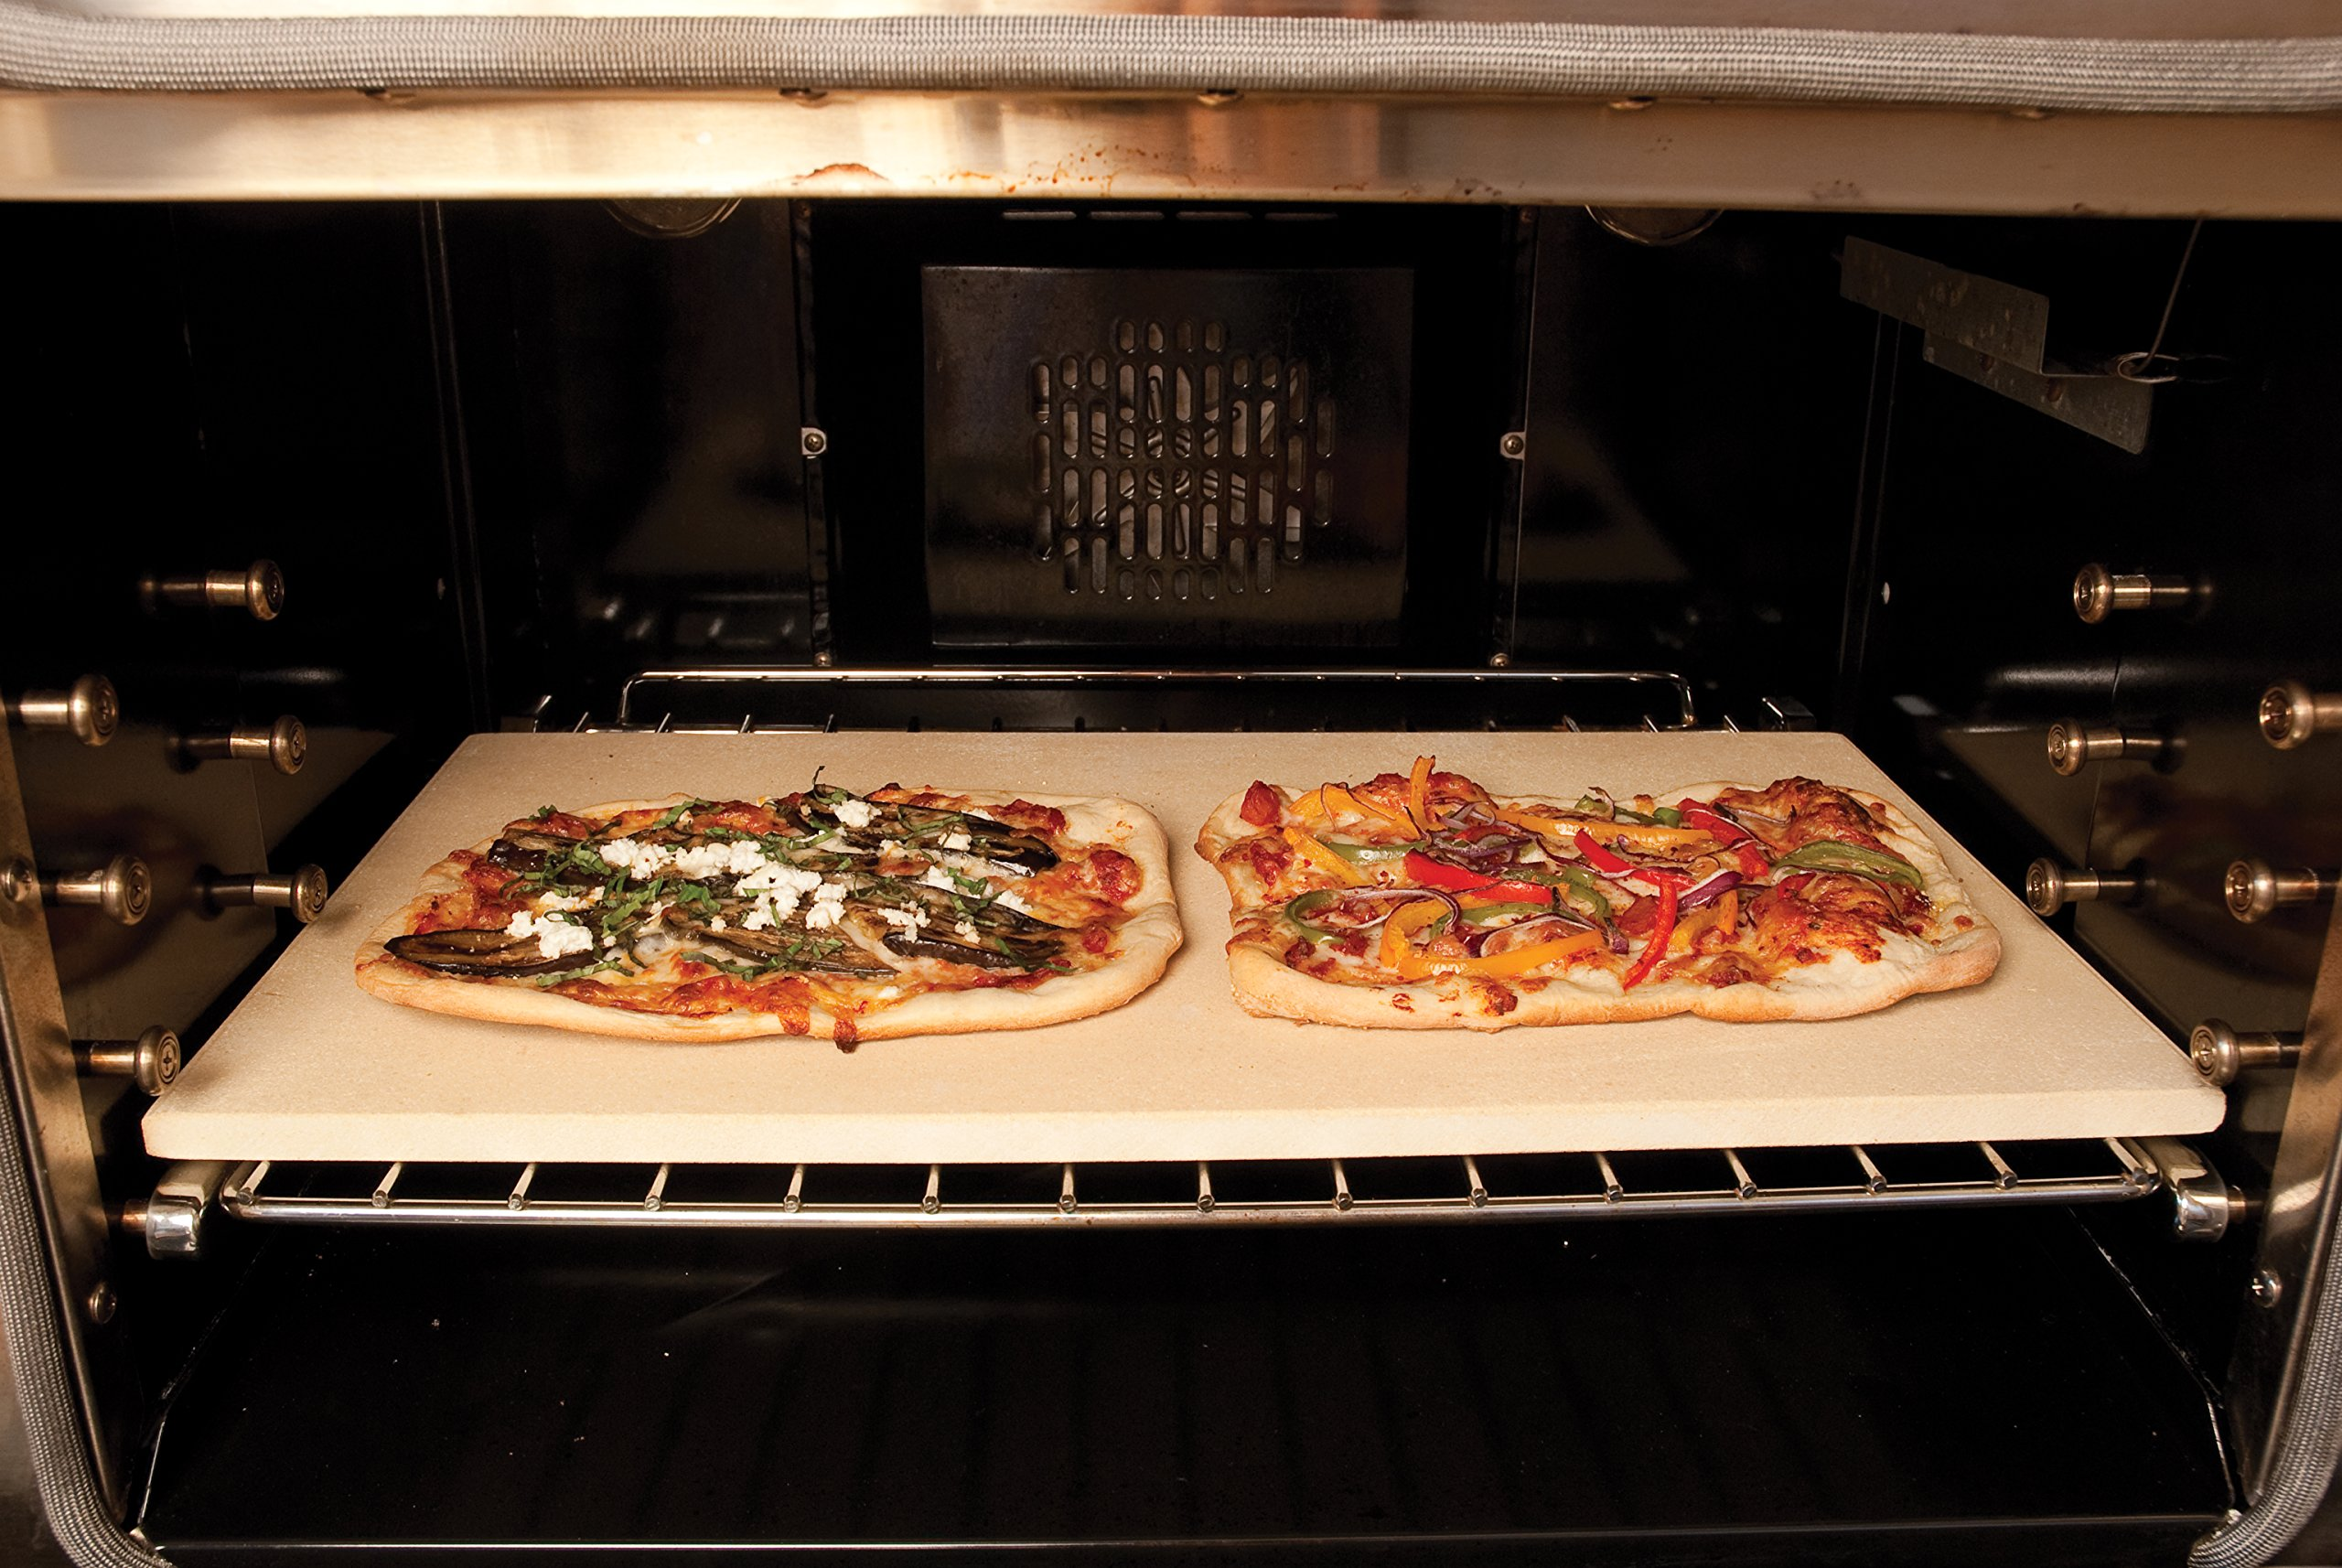 Pizzacraft PC9899 20 x 13.5 Rectangular ThermaBond Baking/Pizza Stone for Oven or Grill by Pizzacraft (Image #4)